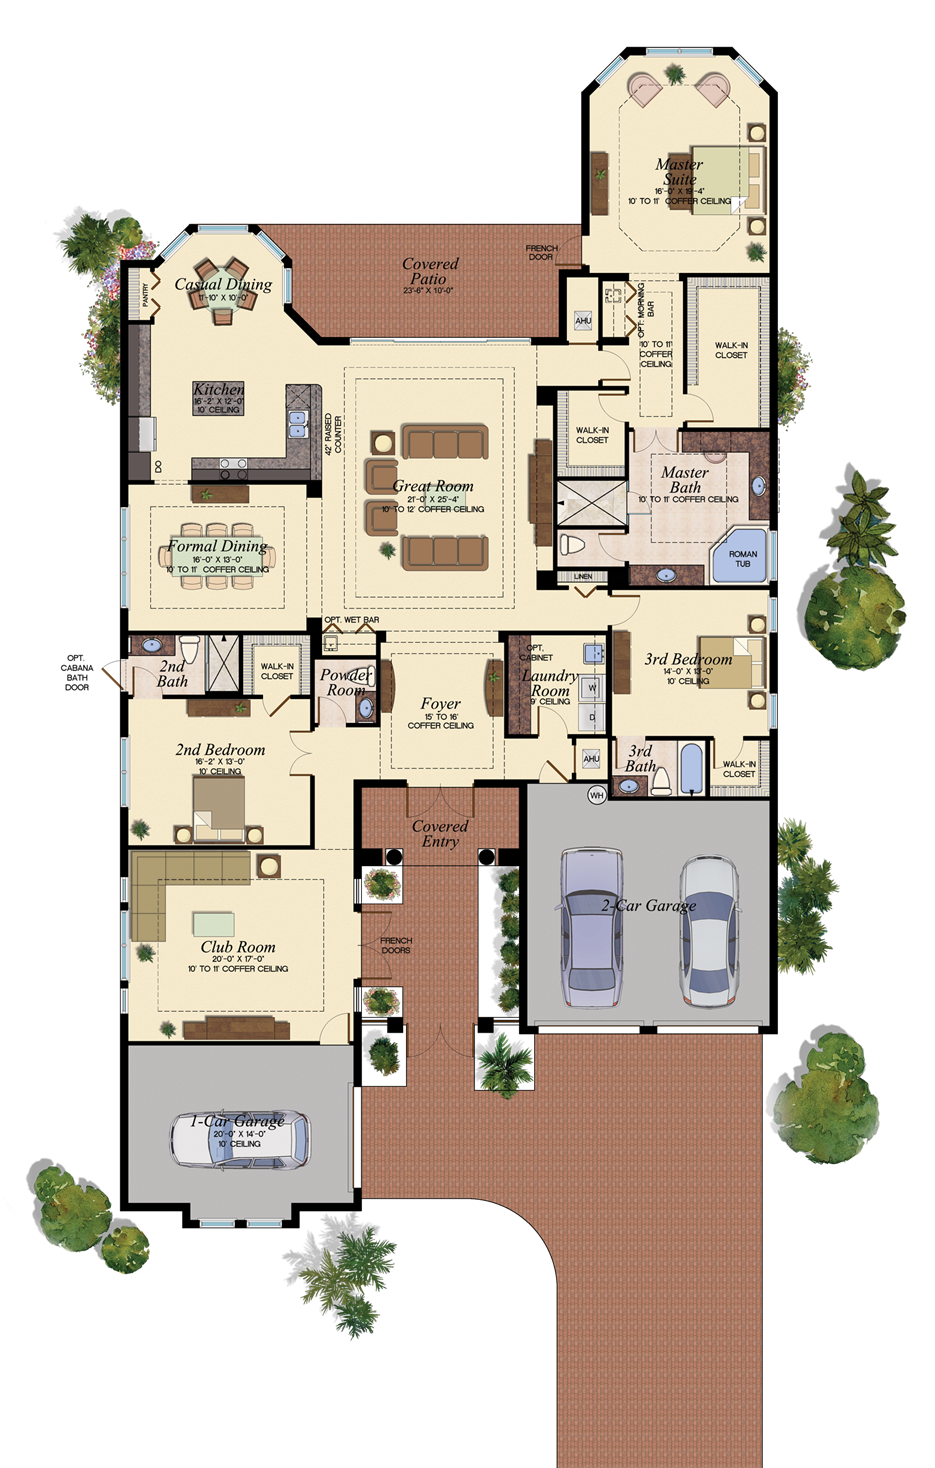 17 best images about florida homes - favorite floorplans on